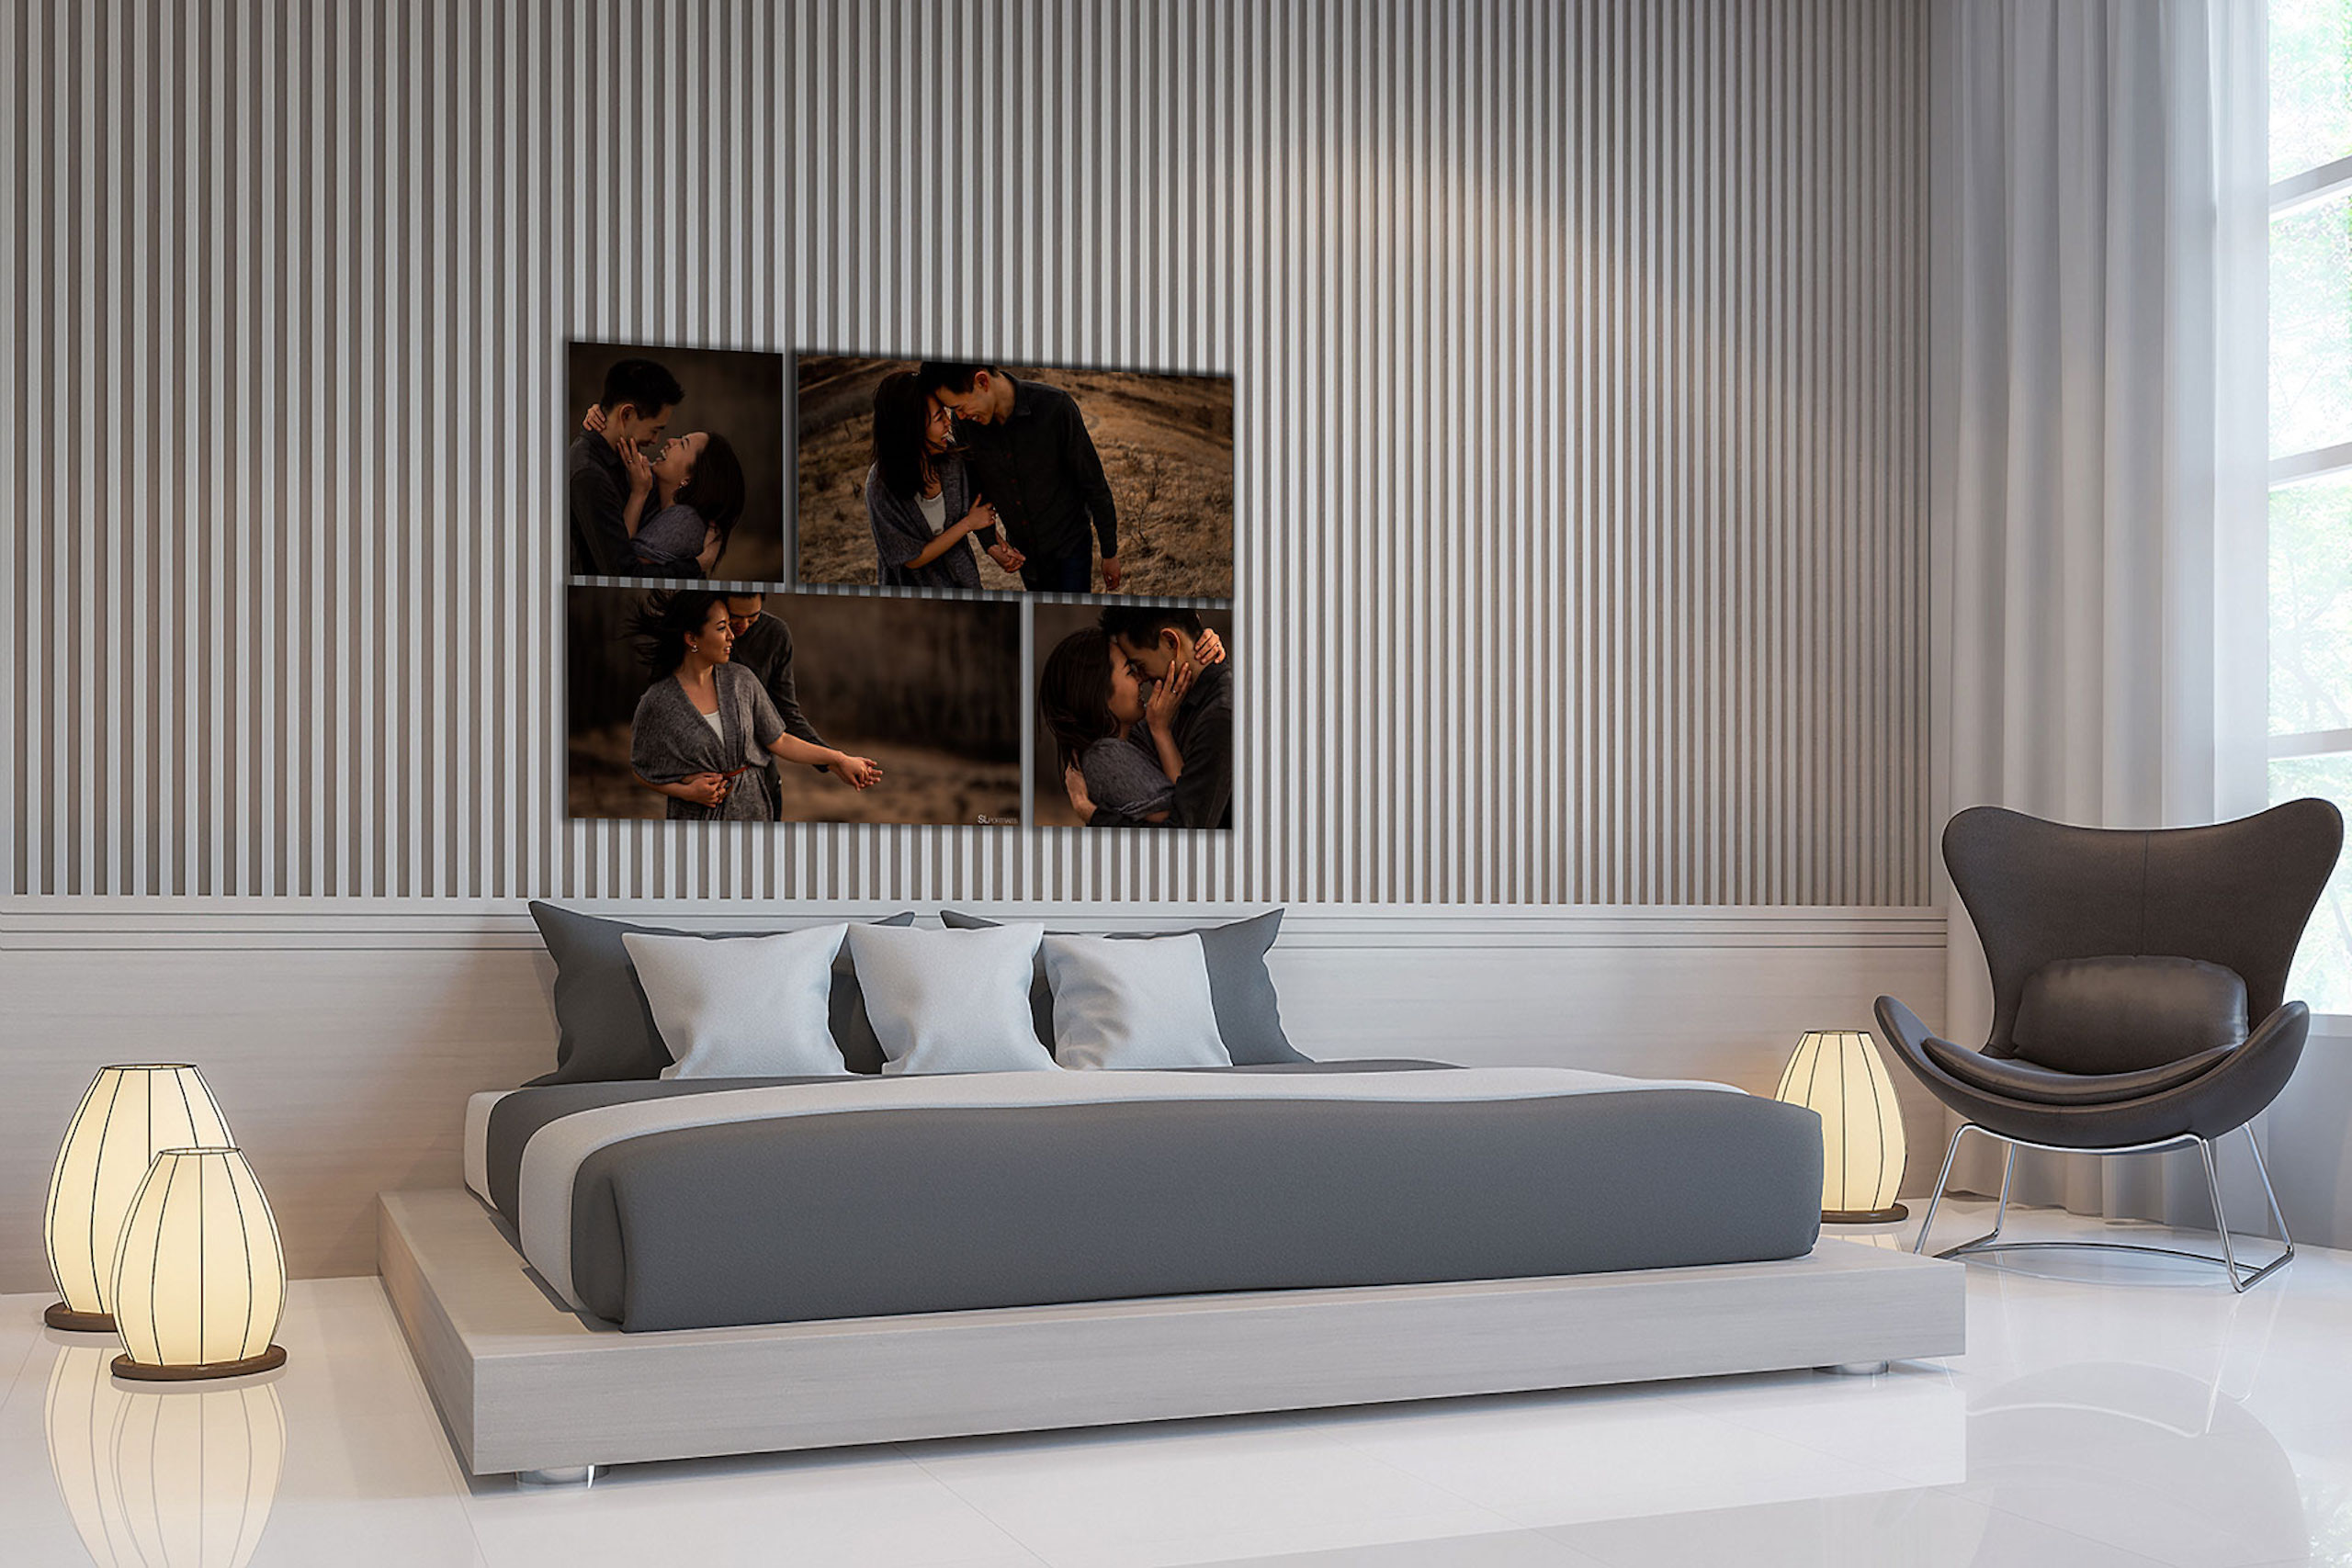 large wall art collection hung above a bed by top calgary portrait photographer sean leblanc